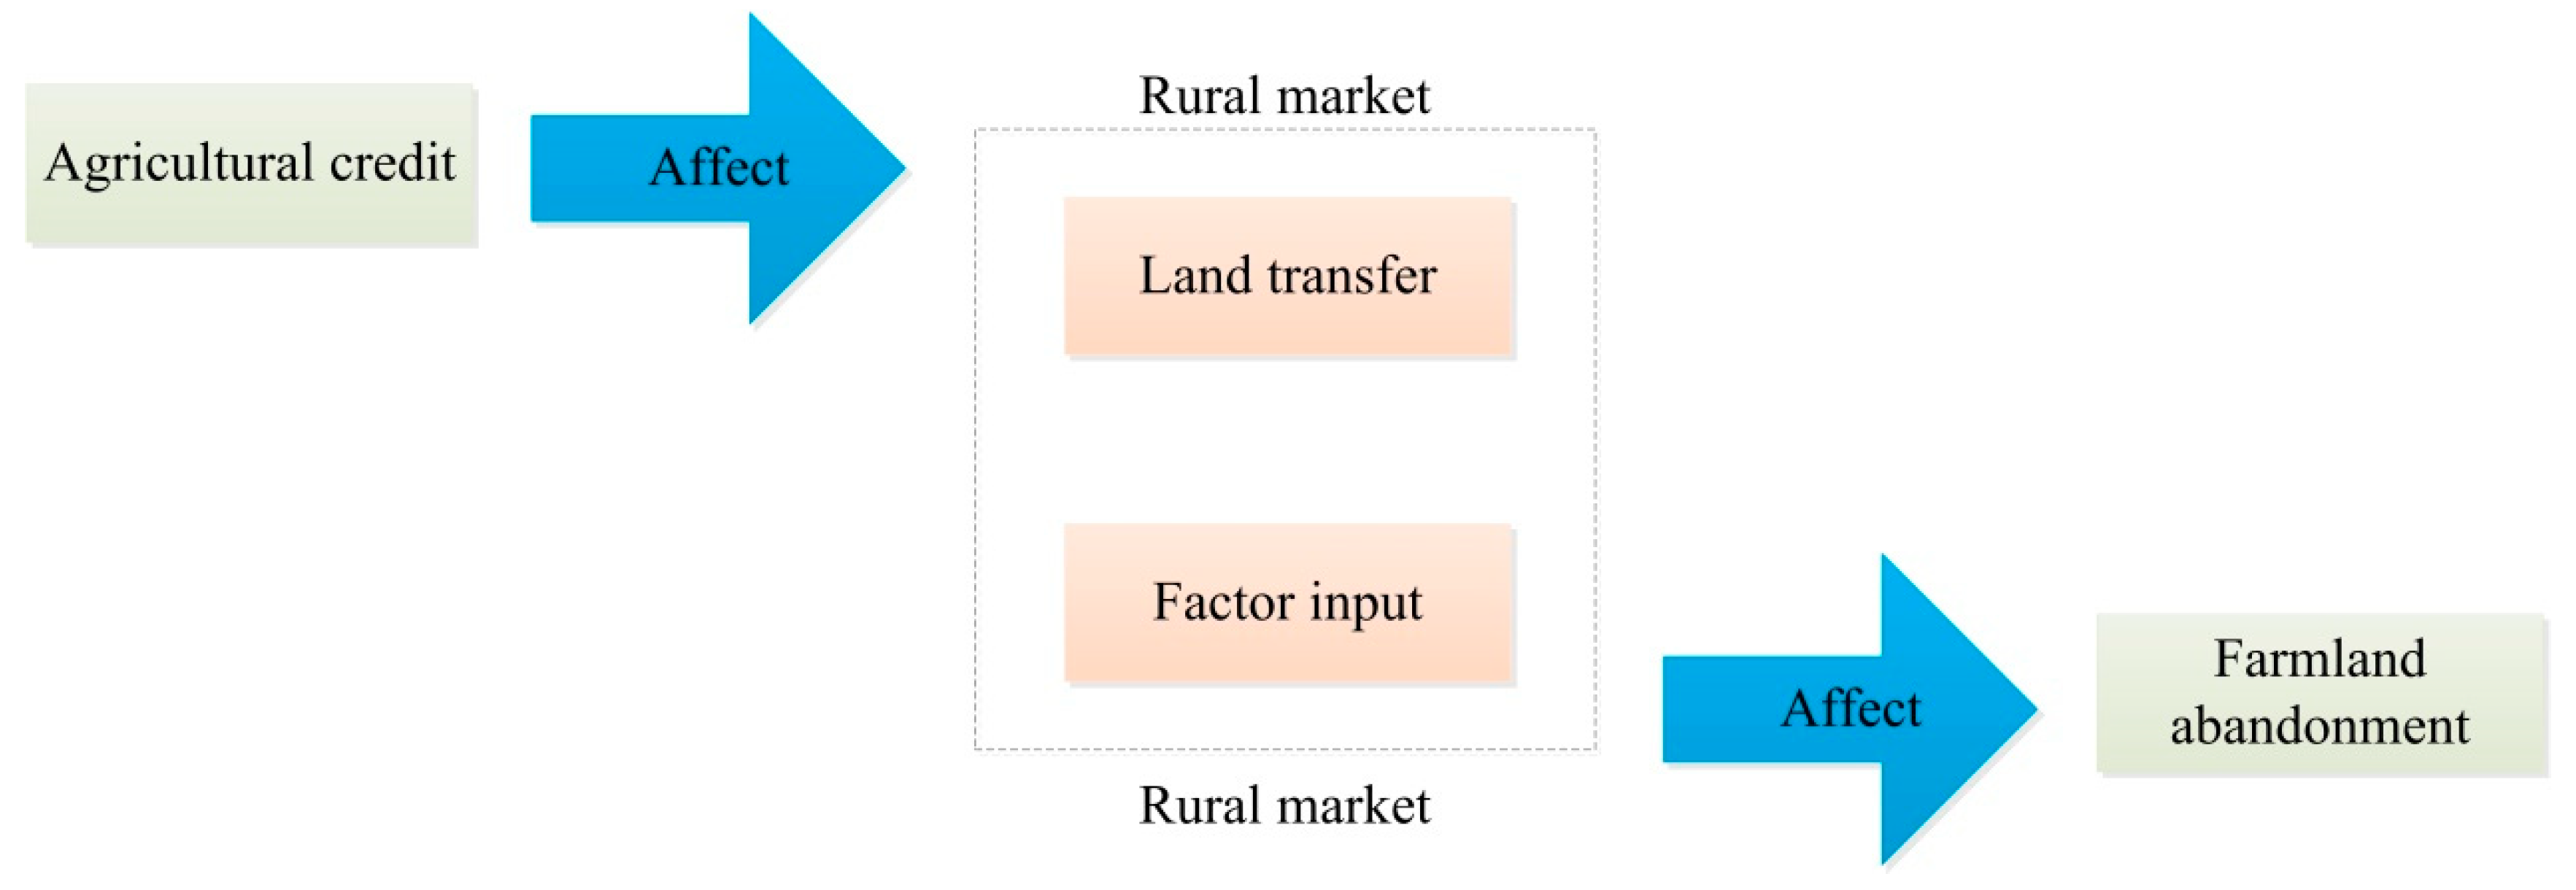 Land Free Full Text Power Of Agricultural Credit In Farmland Abandonment Evidence From Rural China Html